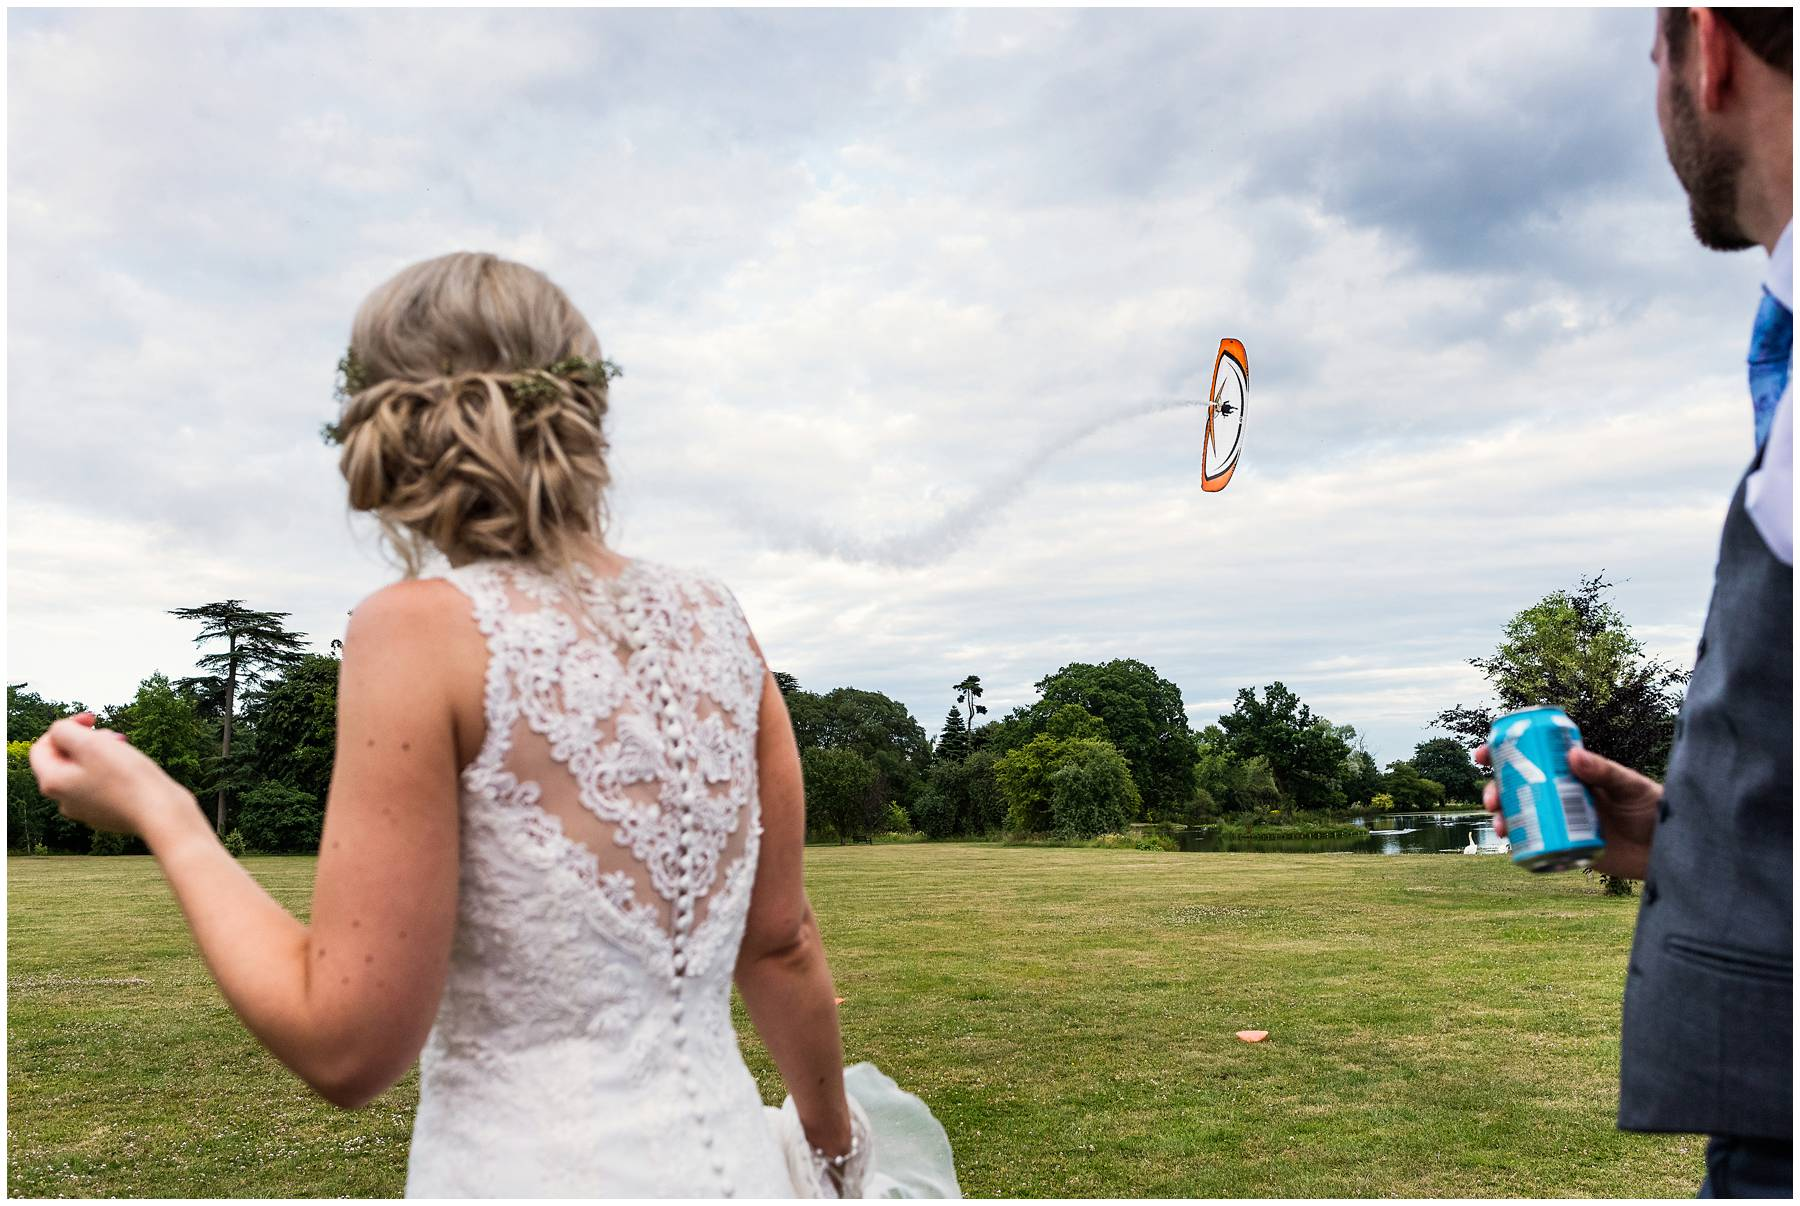 Documentary Wedding Photography at Spetchley Park